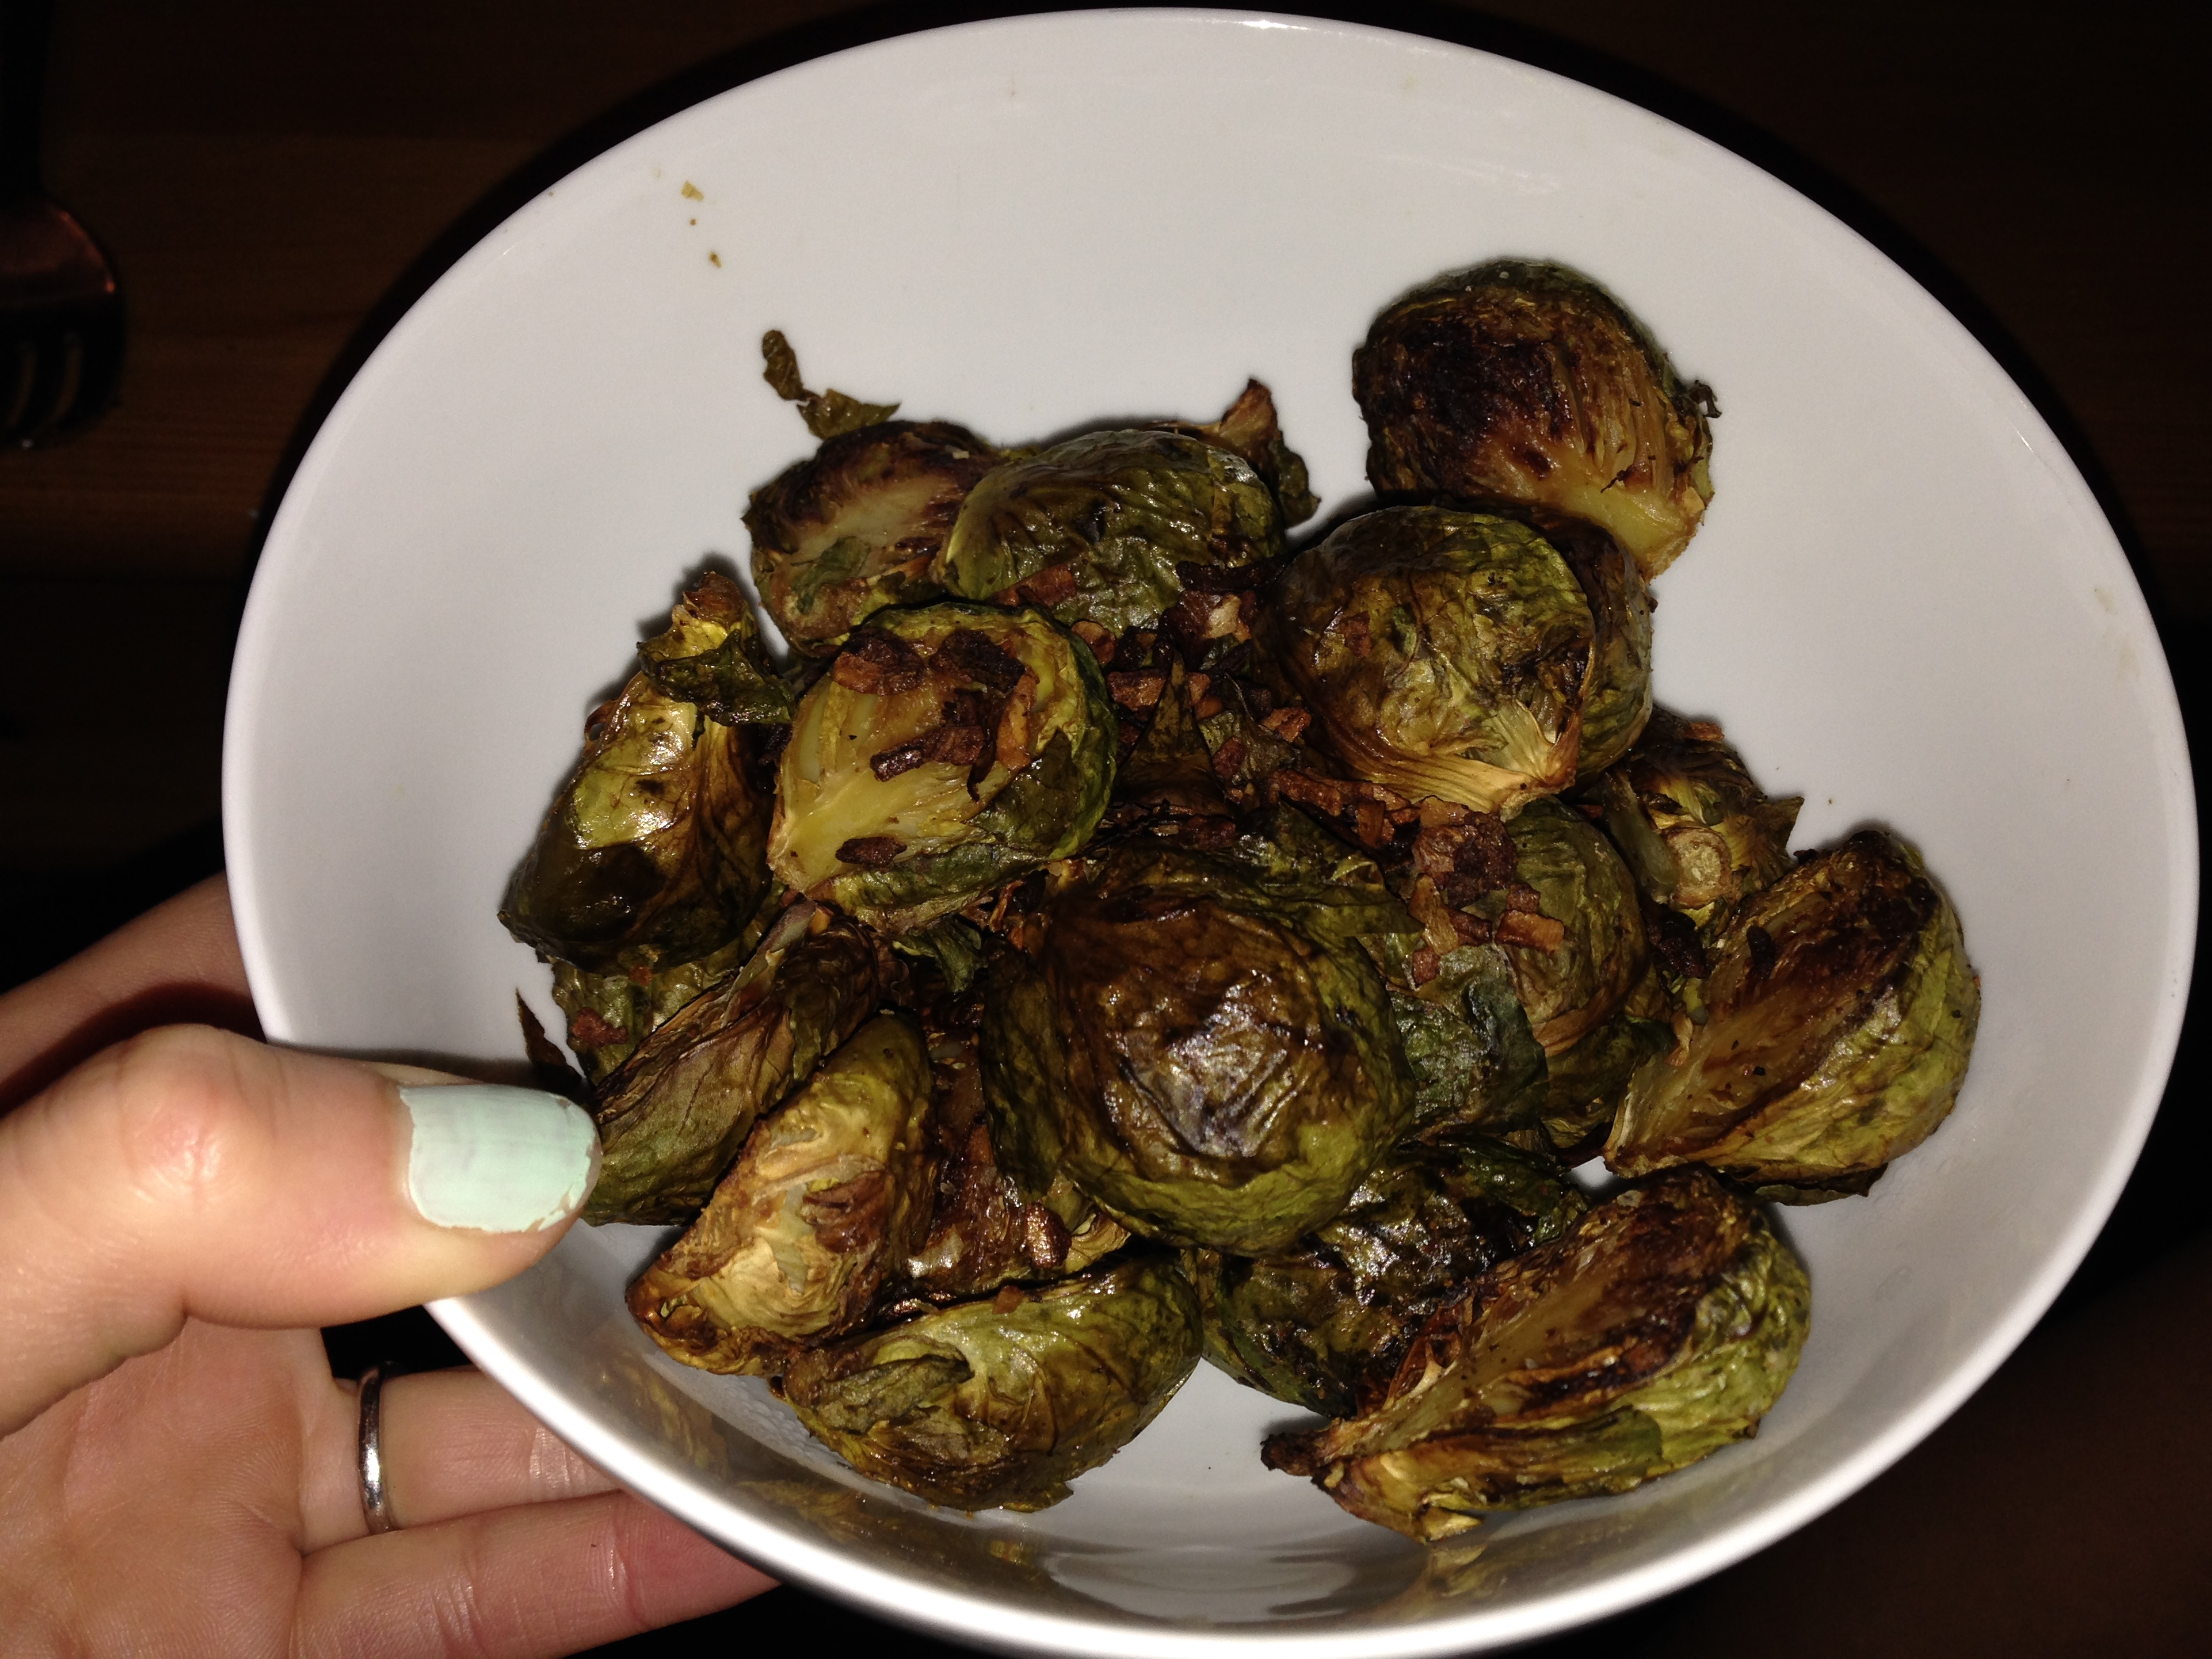 Another recent favorite: overcooked Brussels sprouts. Honeymoon trip to België?